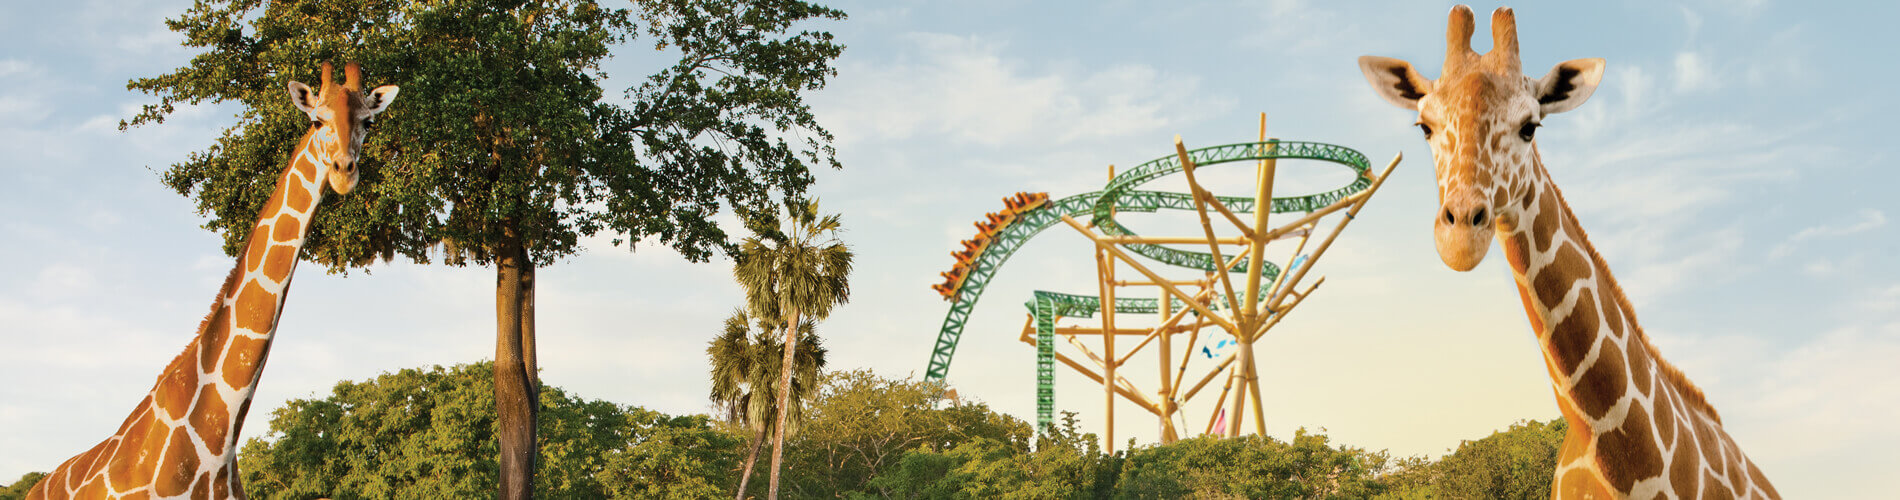 Two giraffes and a roller coaster at Busch Gardens Tampa Bay animal theme park, located in Florida